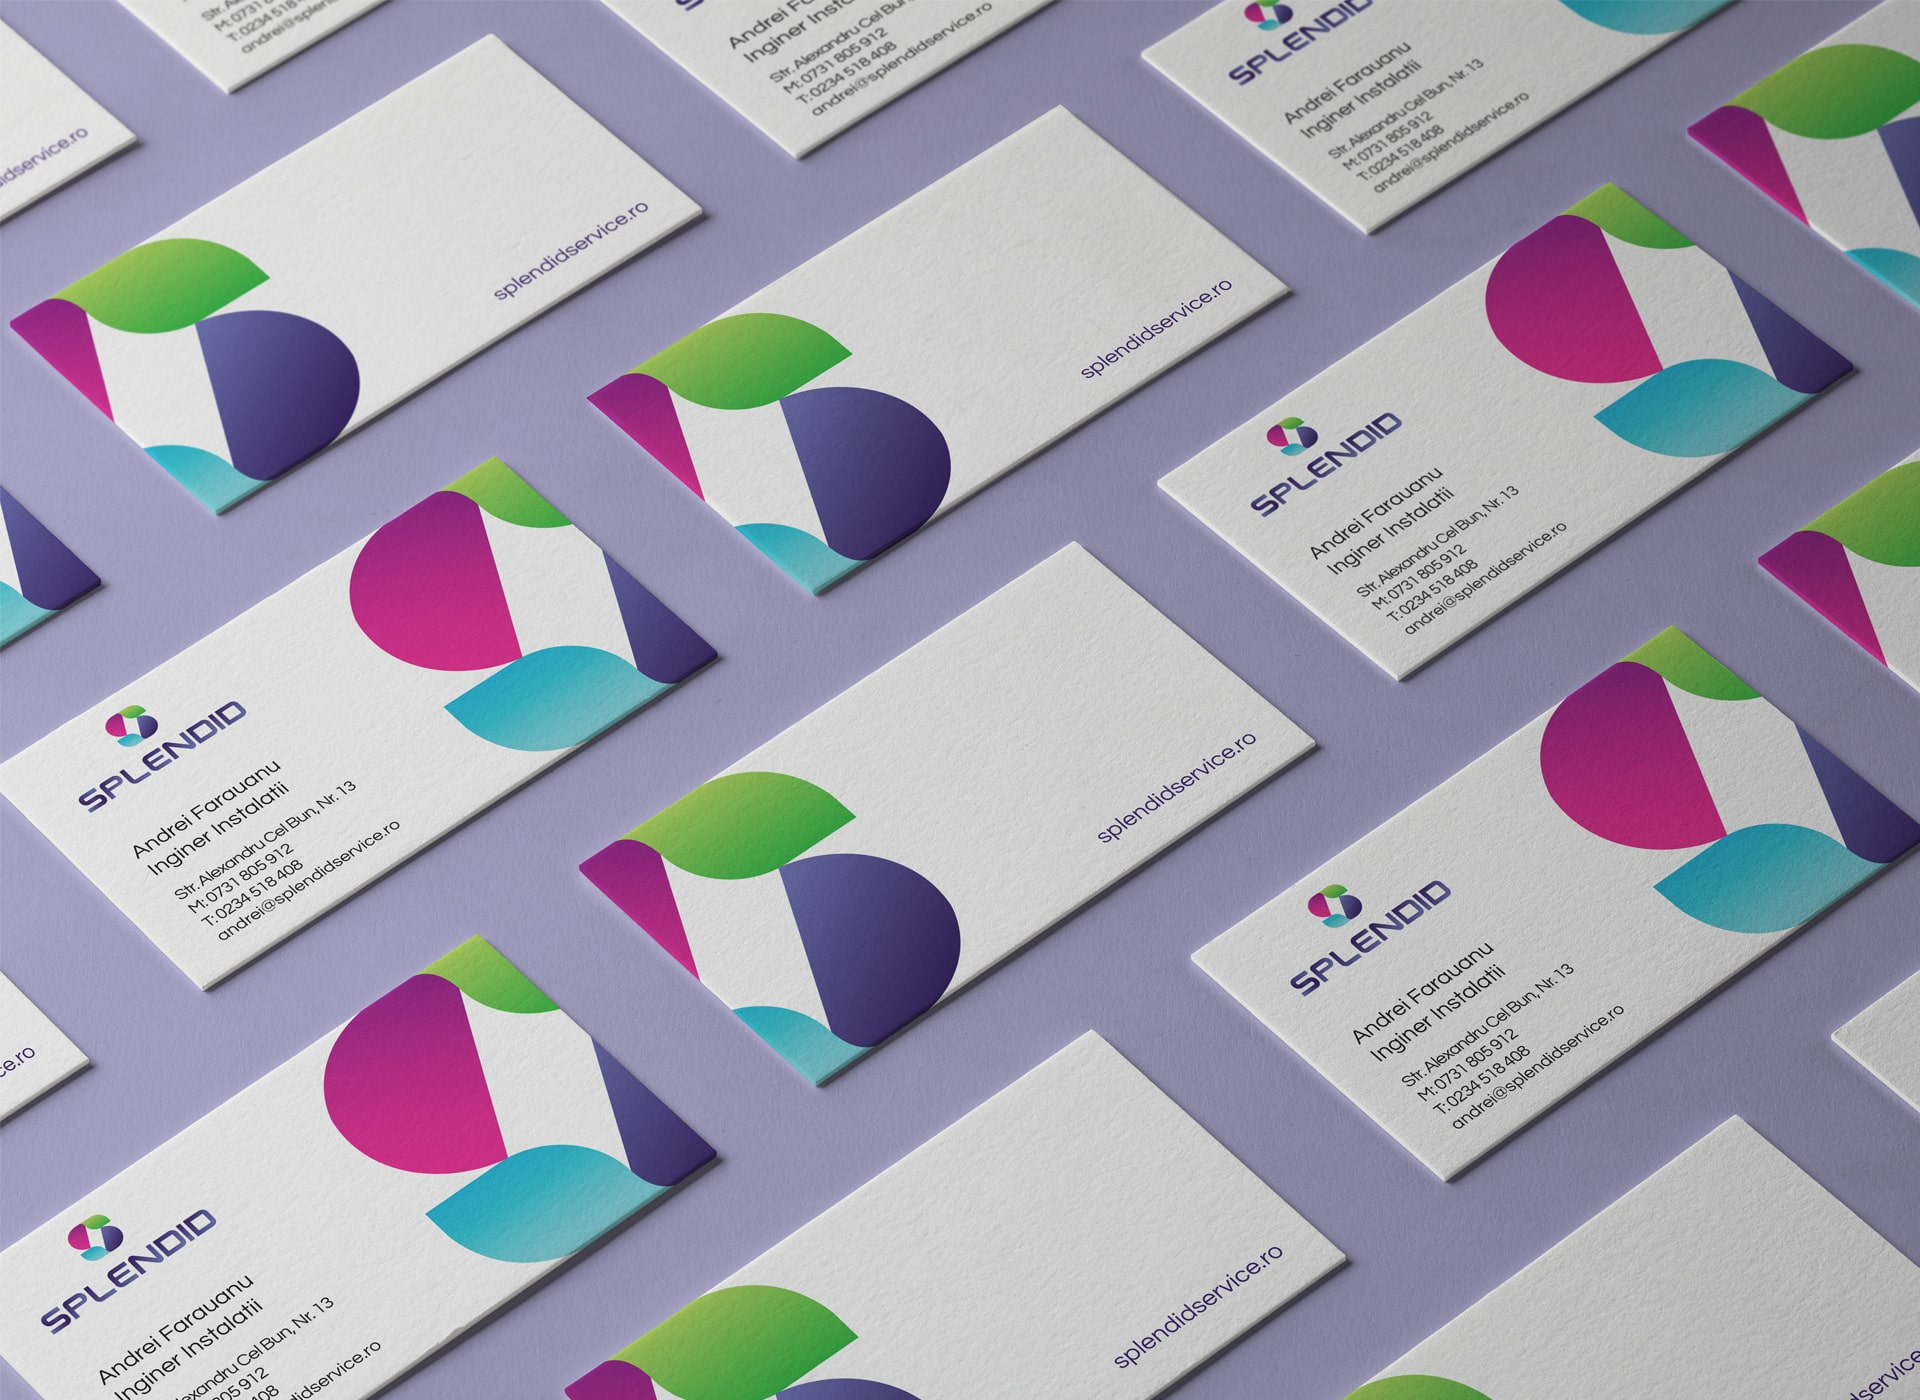 Splendid portofoliu inoveo logo business card